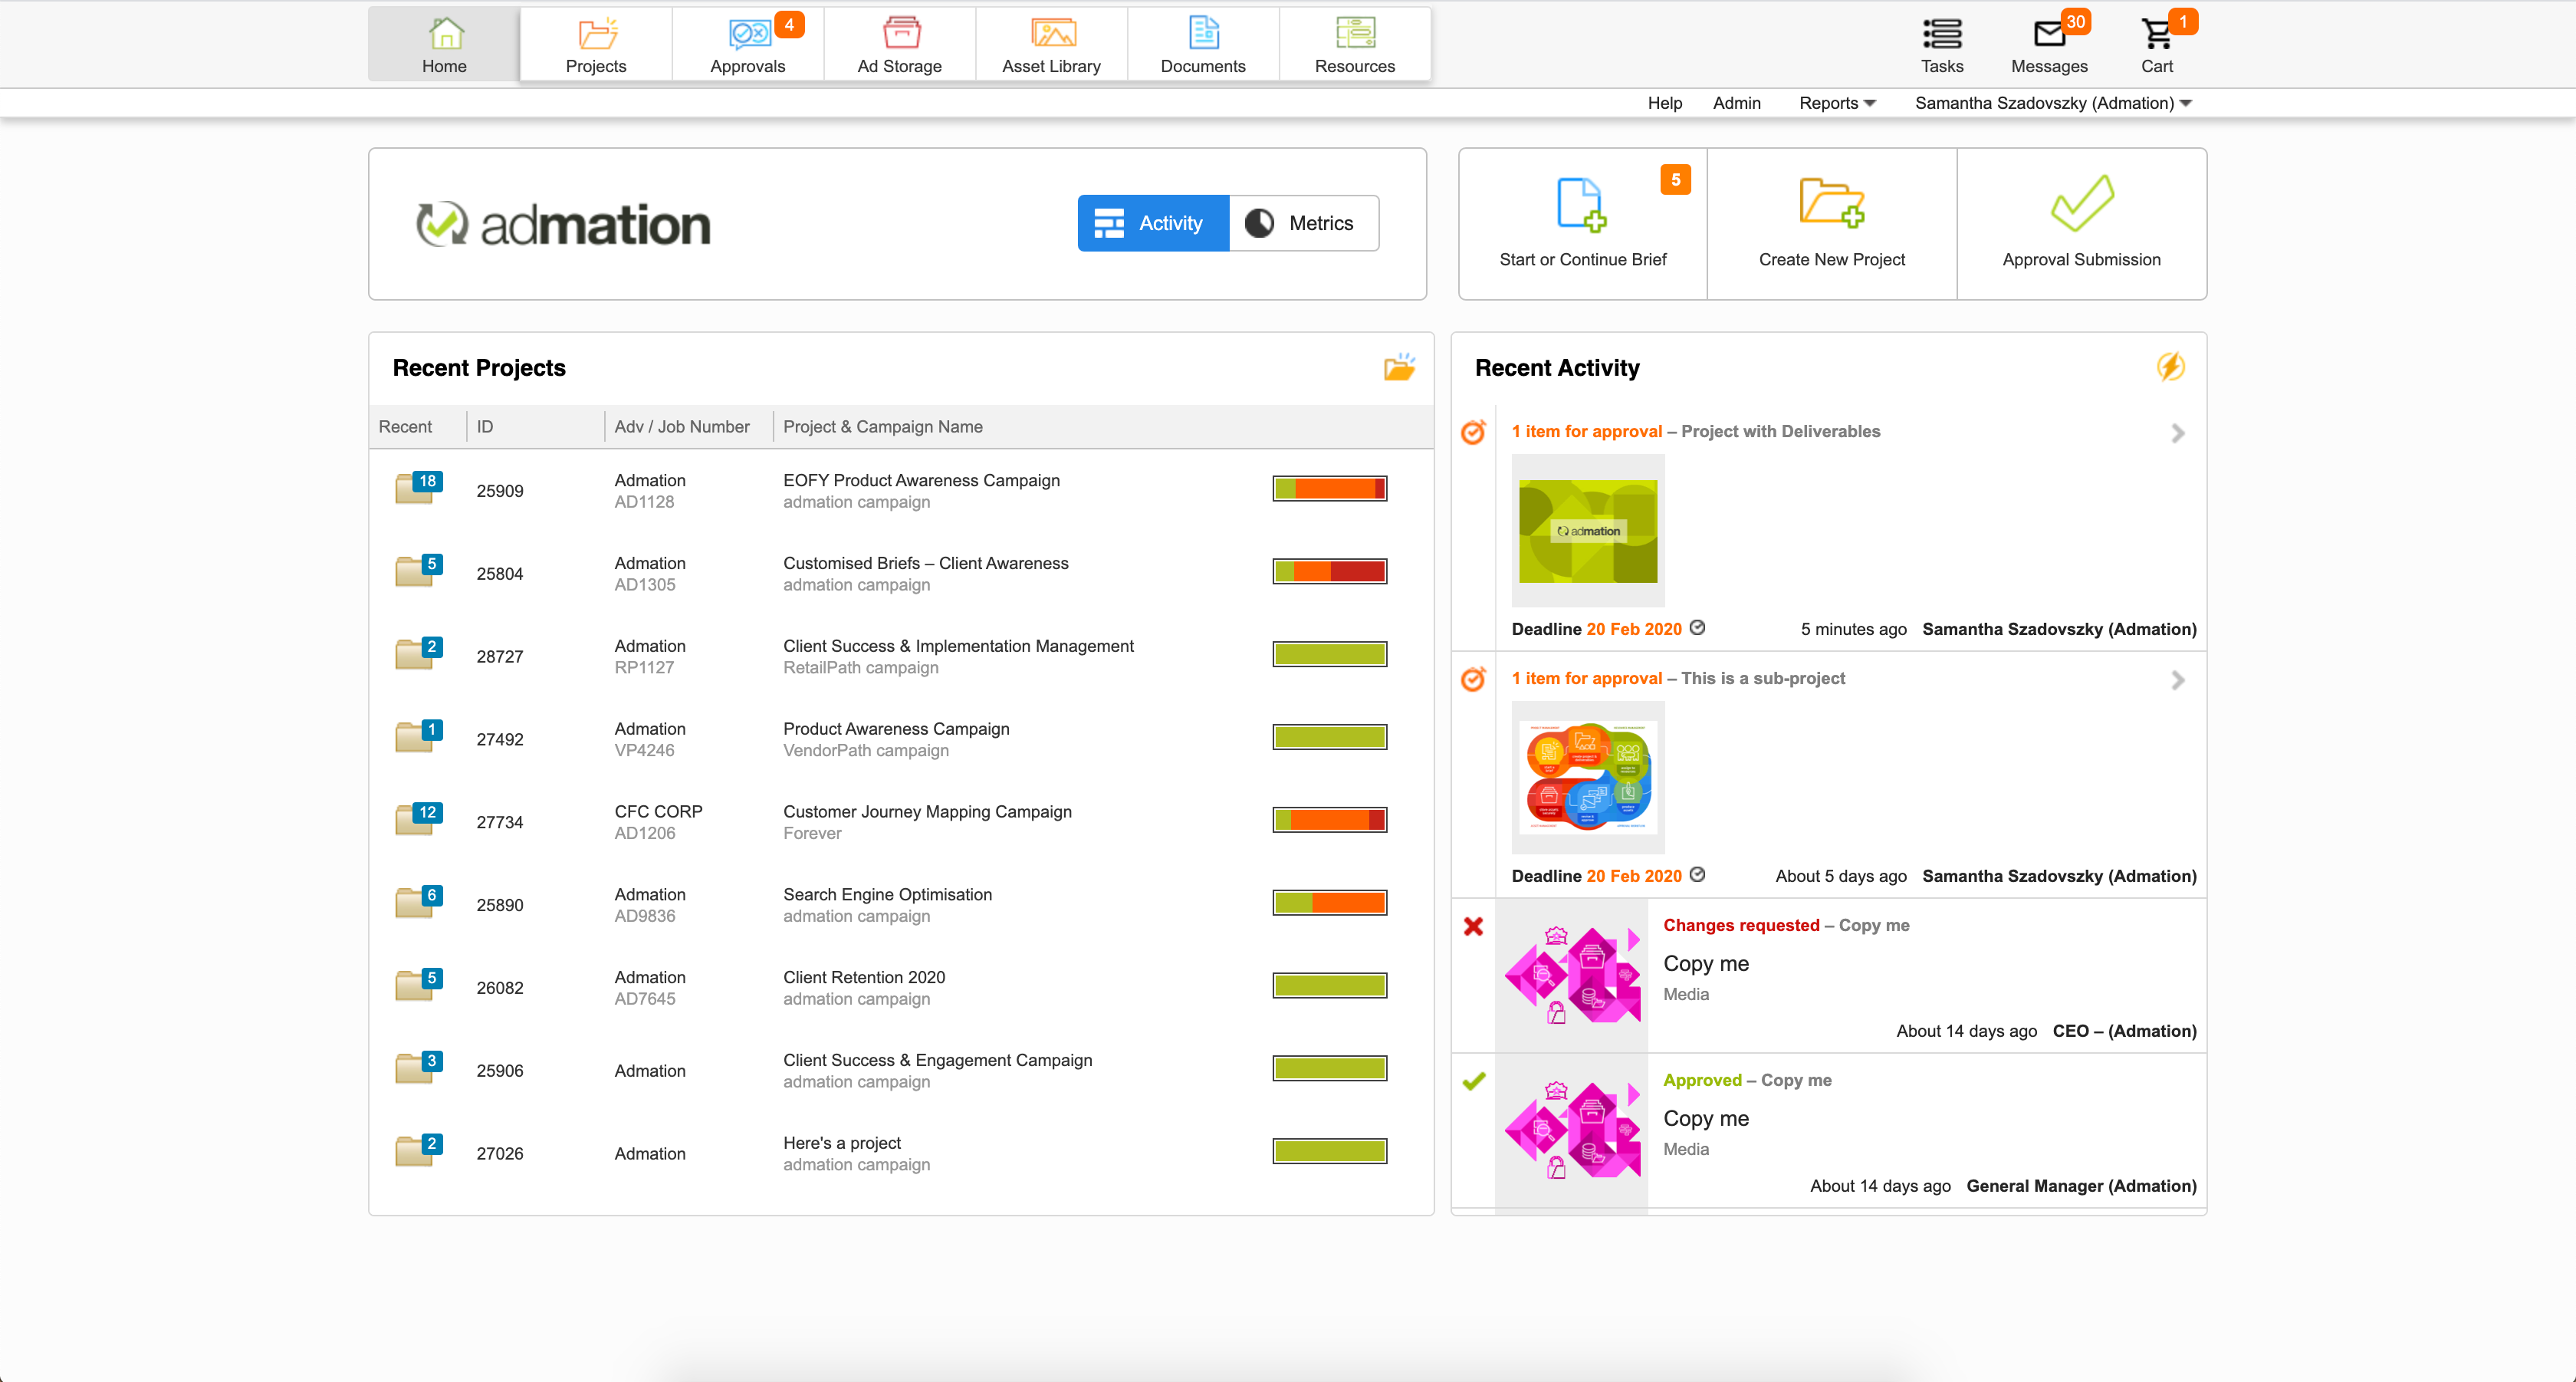 All work in progress is displayed on one central admation dashboard, for ease of viewing your active projects.